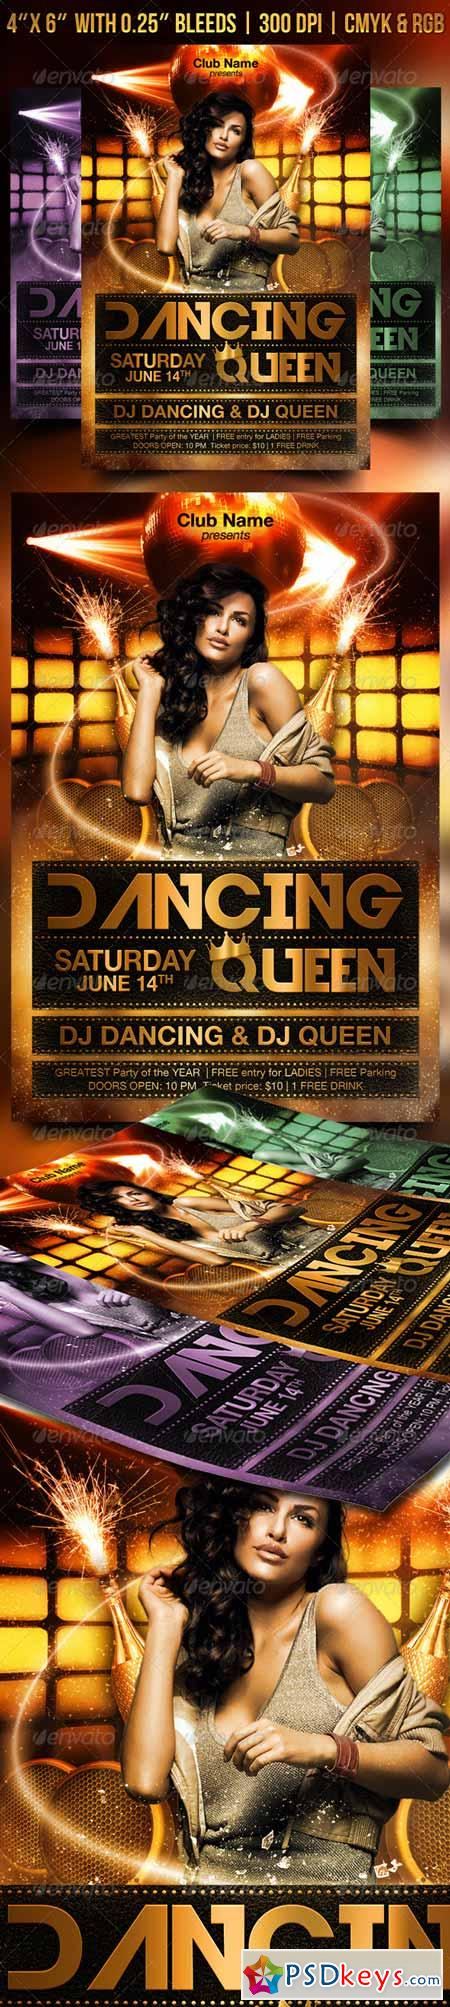 Dancing Queen Flyer 7666383